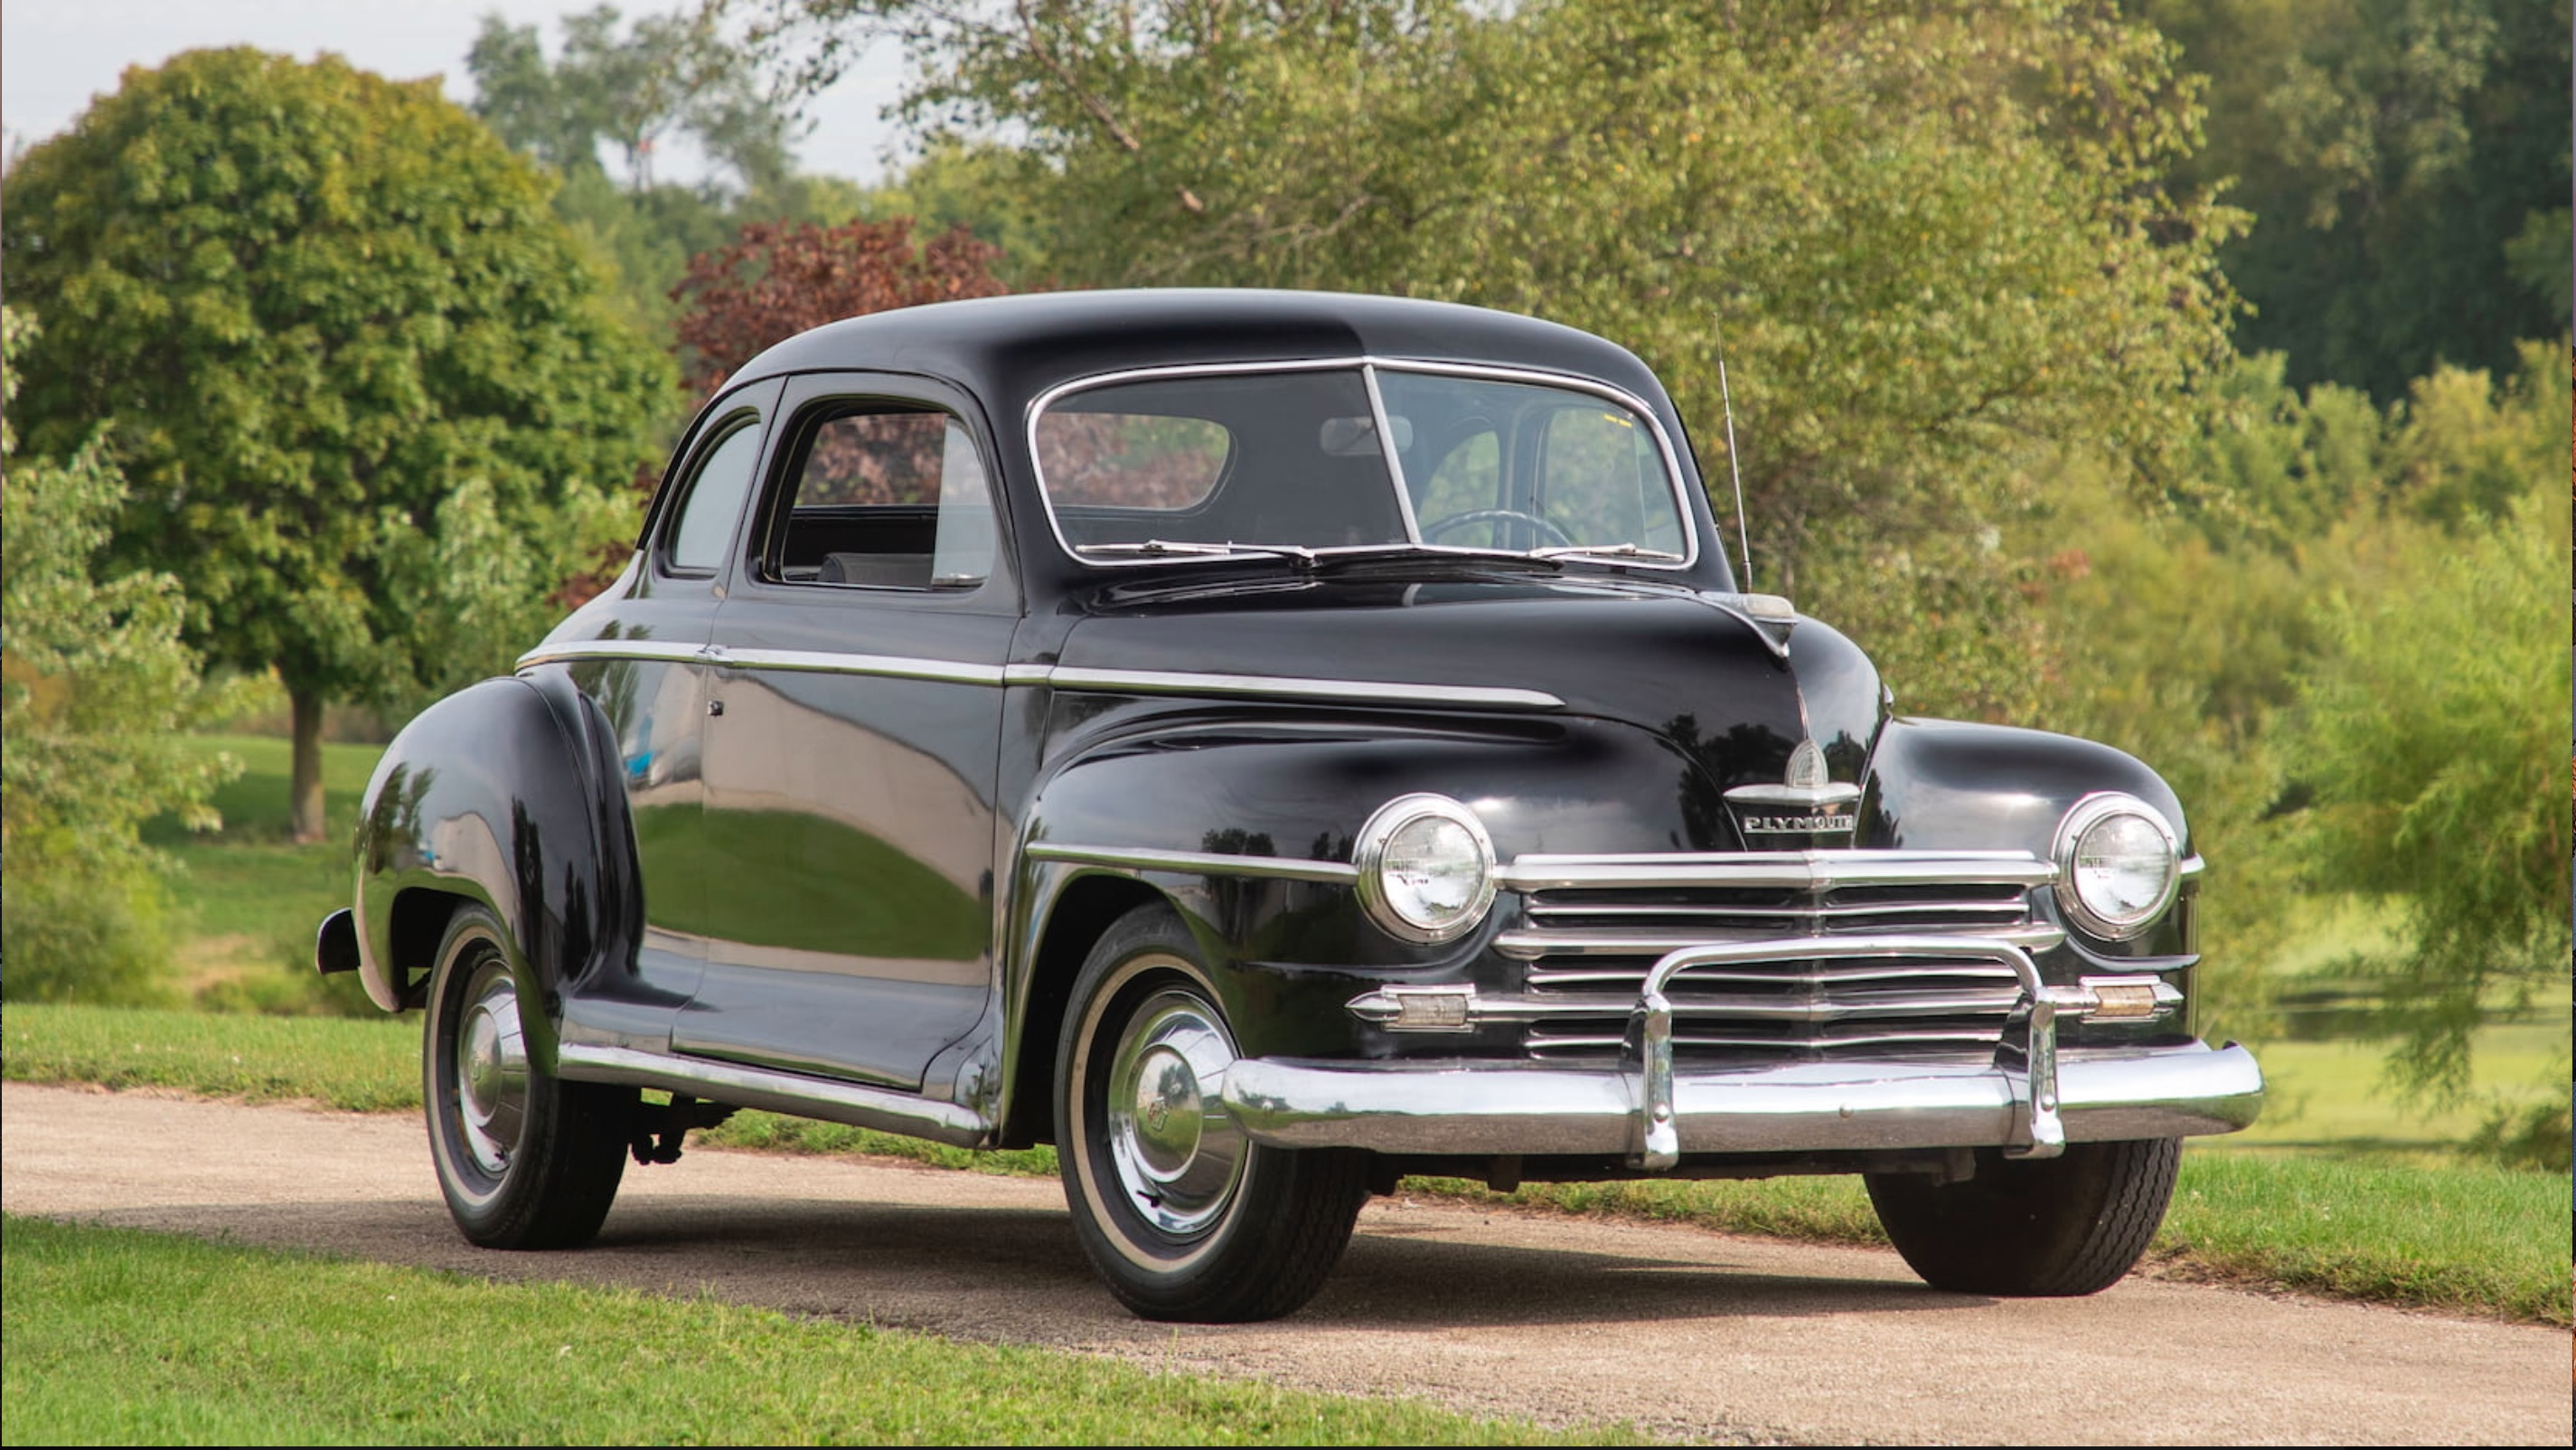 The Little Black Coupe: 1948 Plymouth Special Deluxe